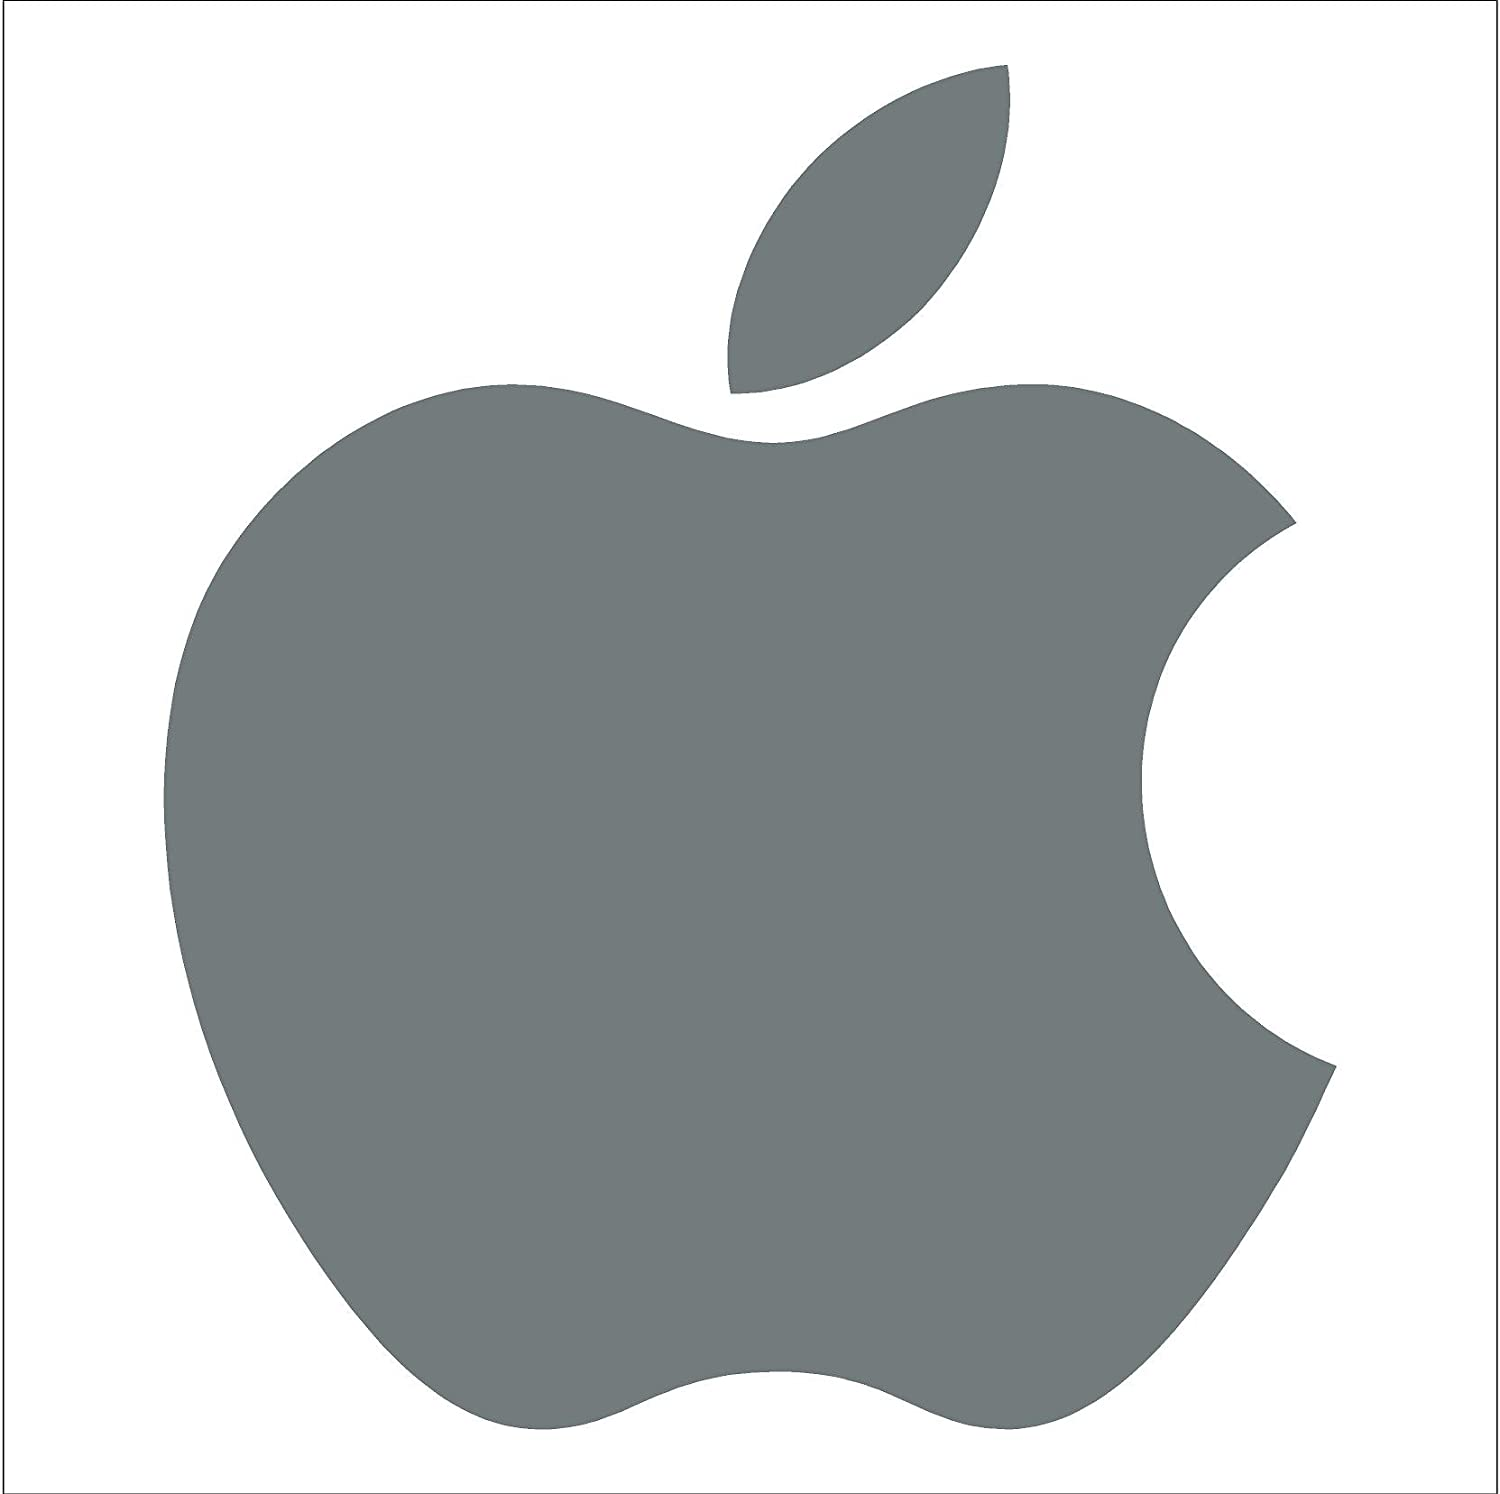 Amazon apple logo die cut vinyl decal sticker 4 light grey amazon apple logo die cut vinyl decal sticker 4 light grey automotive biocorpaavc Gallery